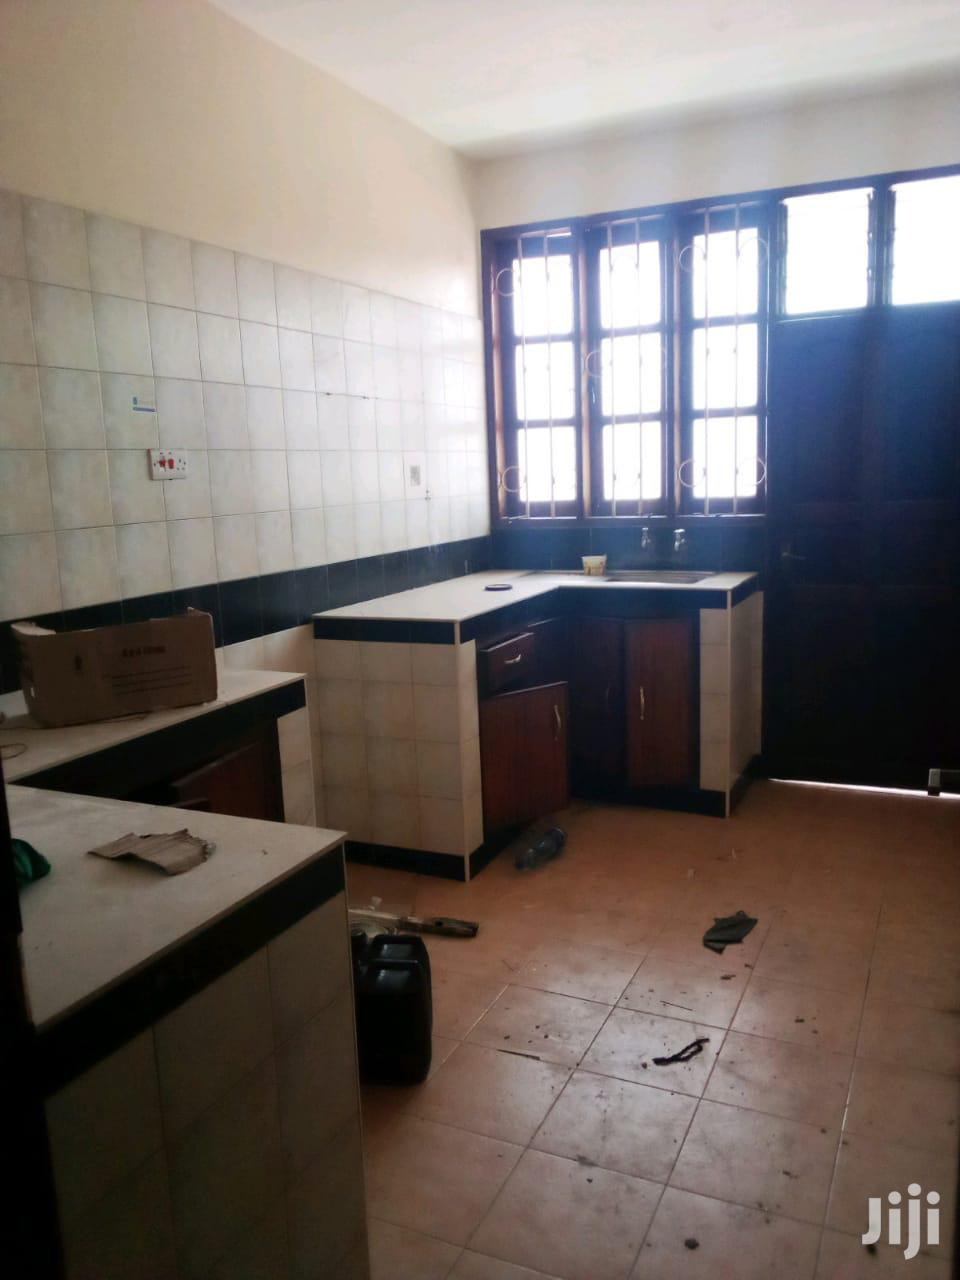 Splendid 3 Bedroom Ensuite Tudor | Houses & Apartments For Rent for sale in Tudor, Mombasa, Kenya